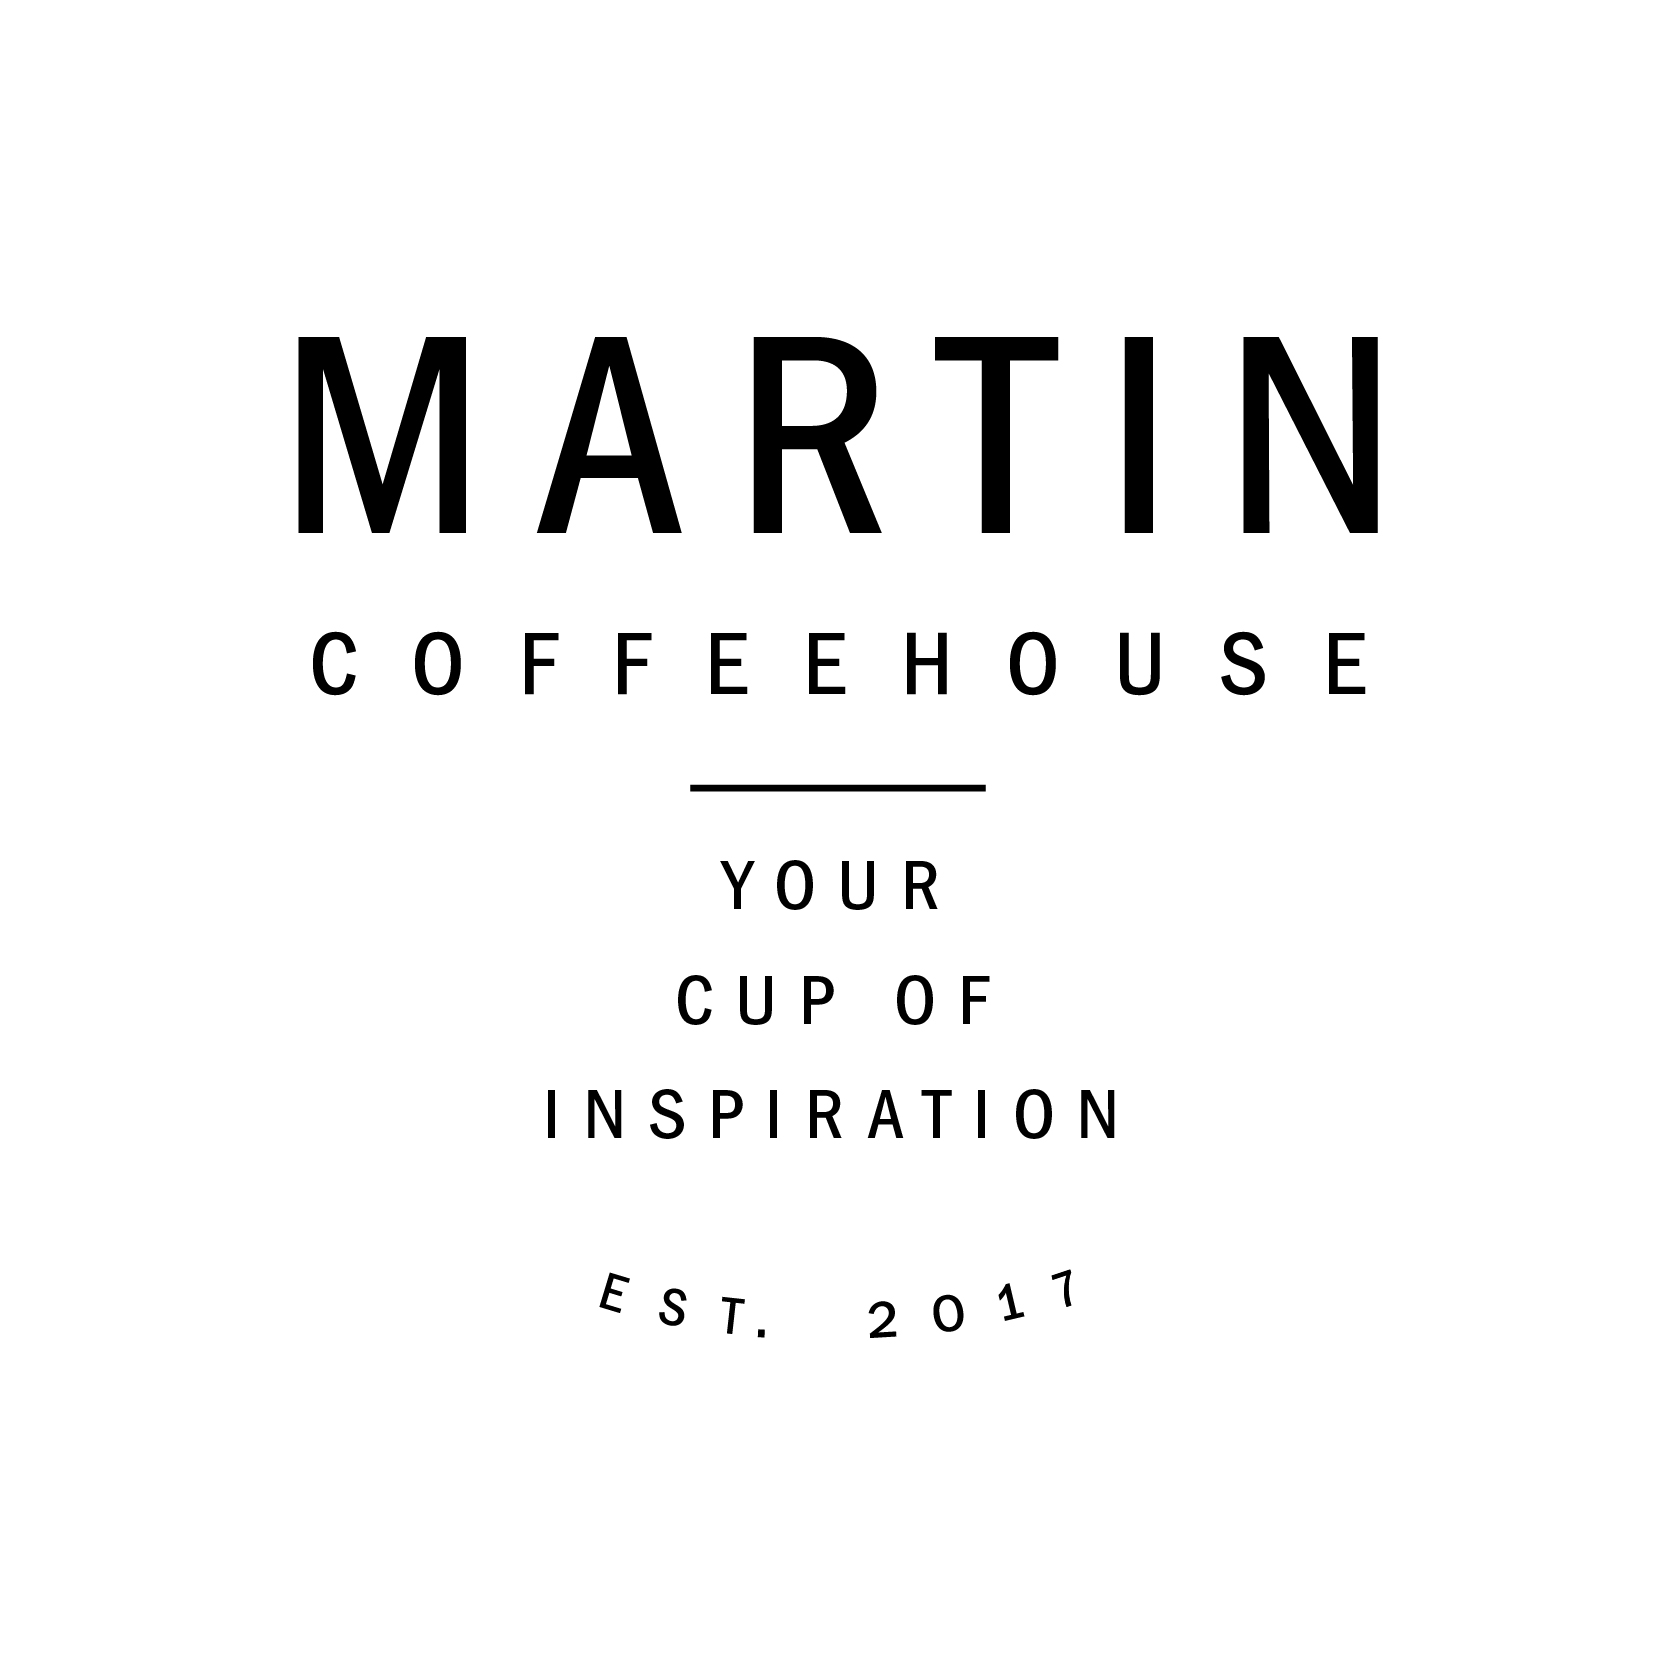 Martin coffeehouse.jpg